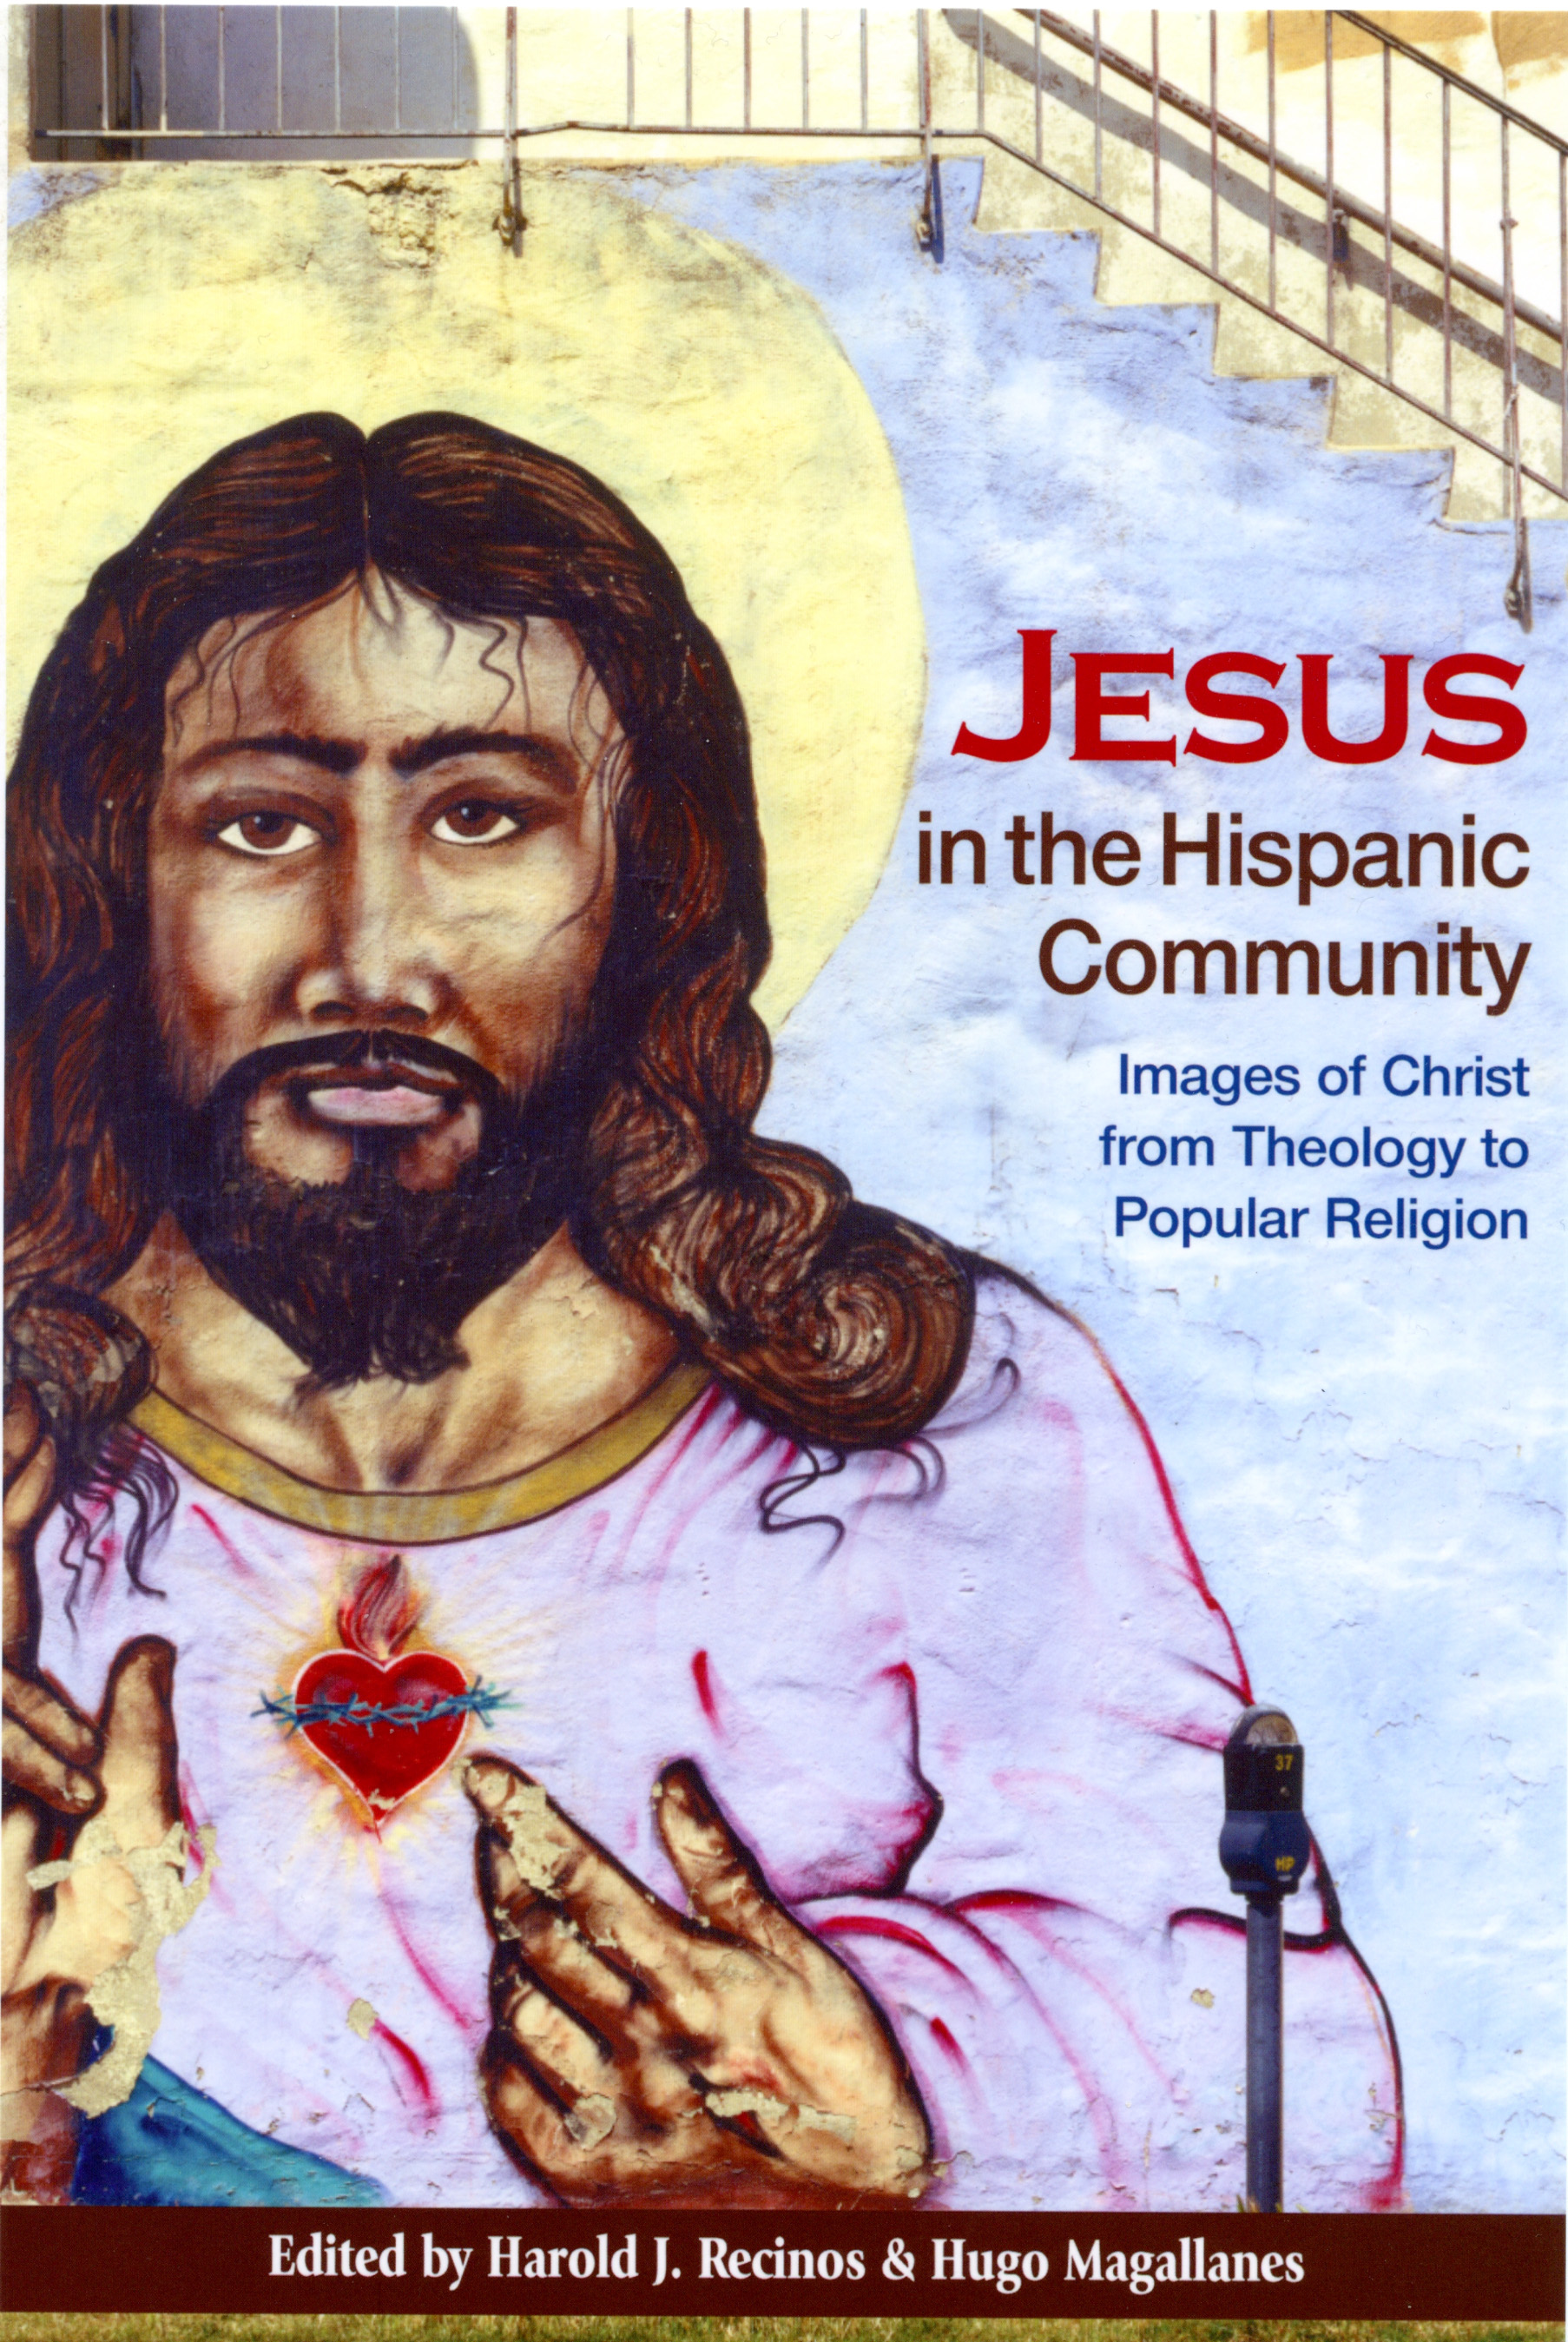 'Jesus in the Hispanic Community' book cover